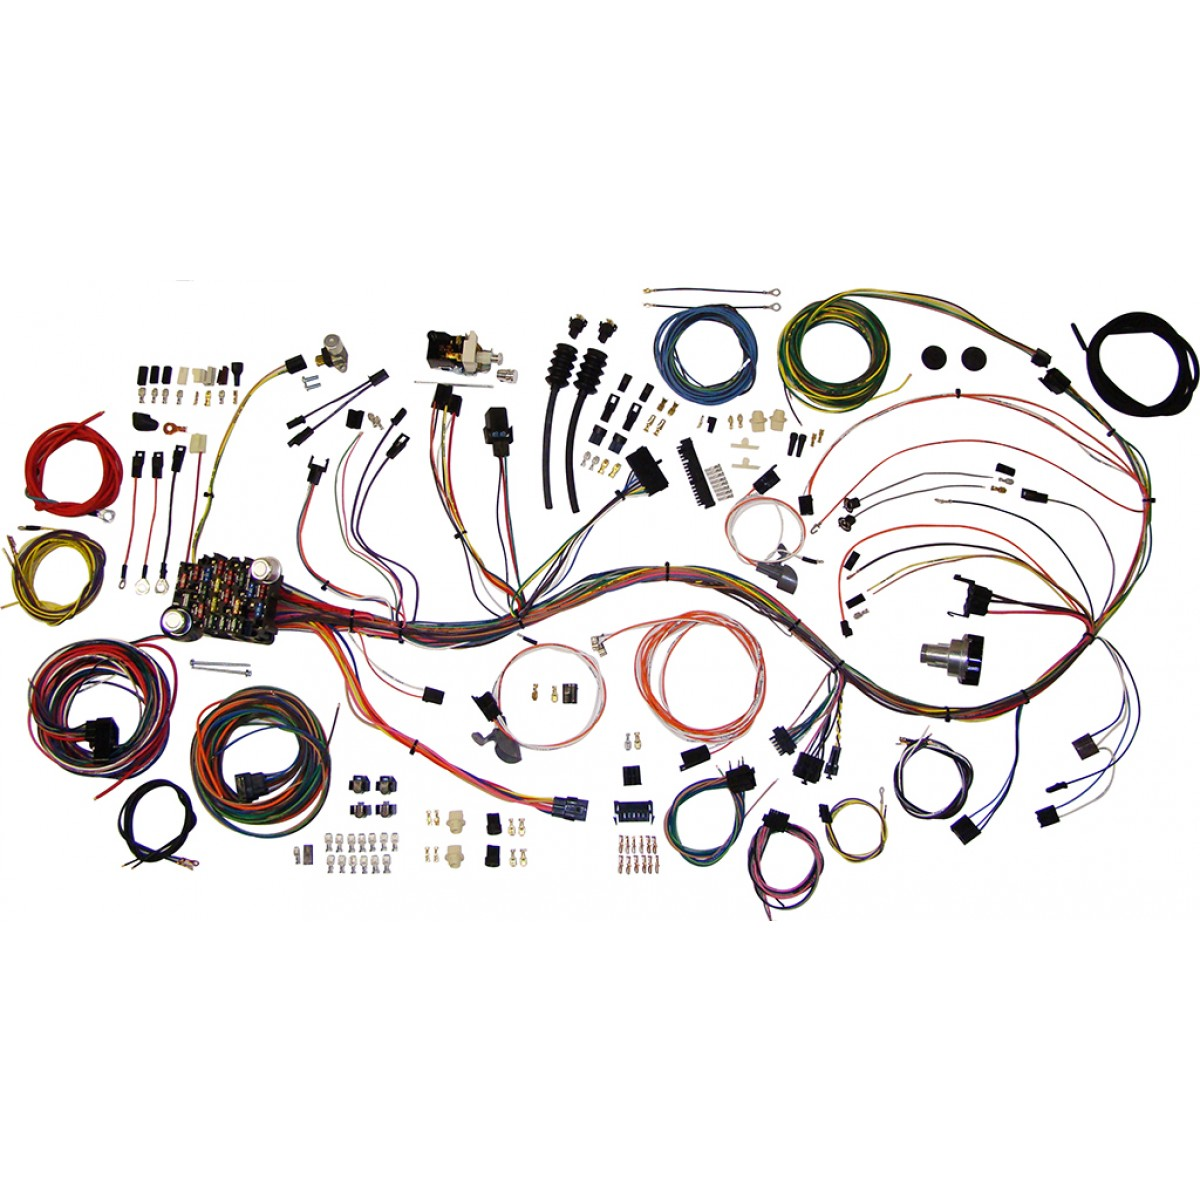 complete wiring harness kit 1969 1972 chevy truck part 510089 c10 c20 wire harness 1972 american auto wire code 510 wiring harness factory fitting Wire Harness Assembly at alyssarenee.co